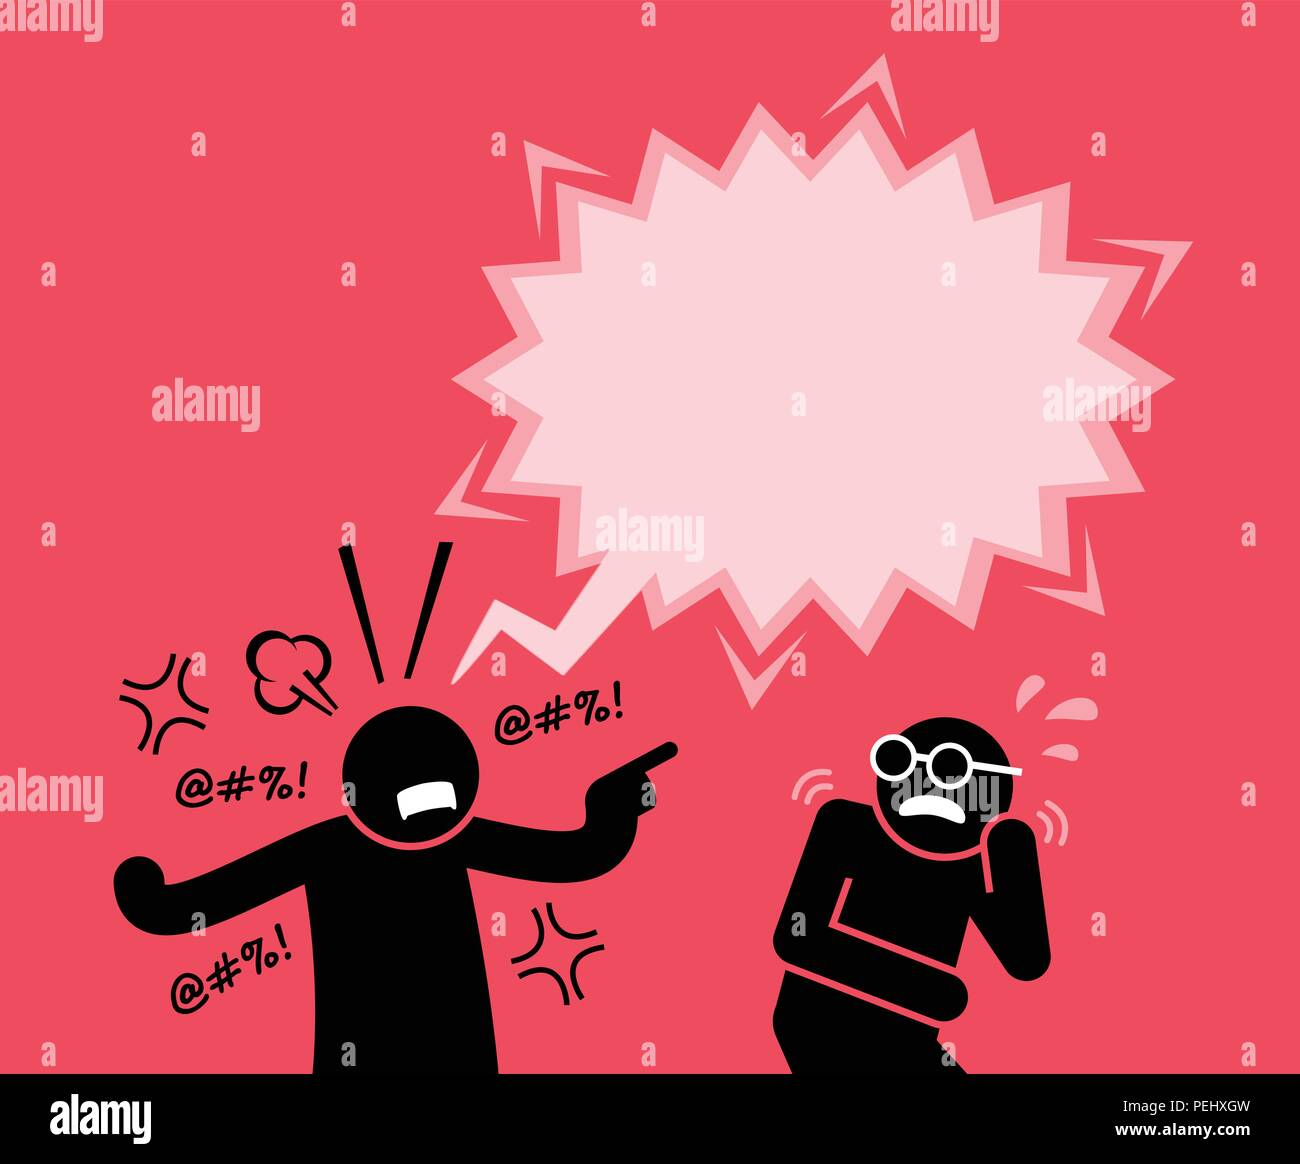 He is blaming and accusing him for wrongdoing. His friend is scared by his reaction. - Stock Image